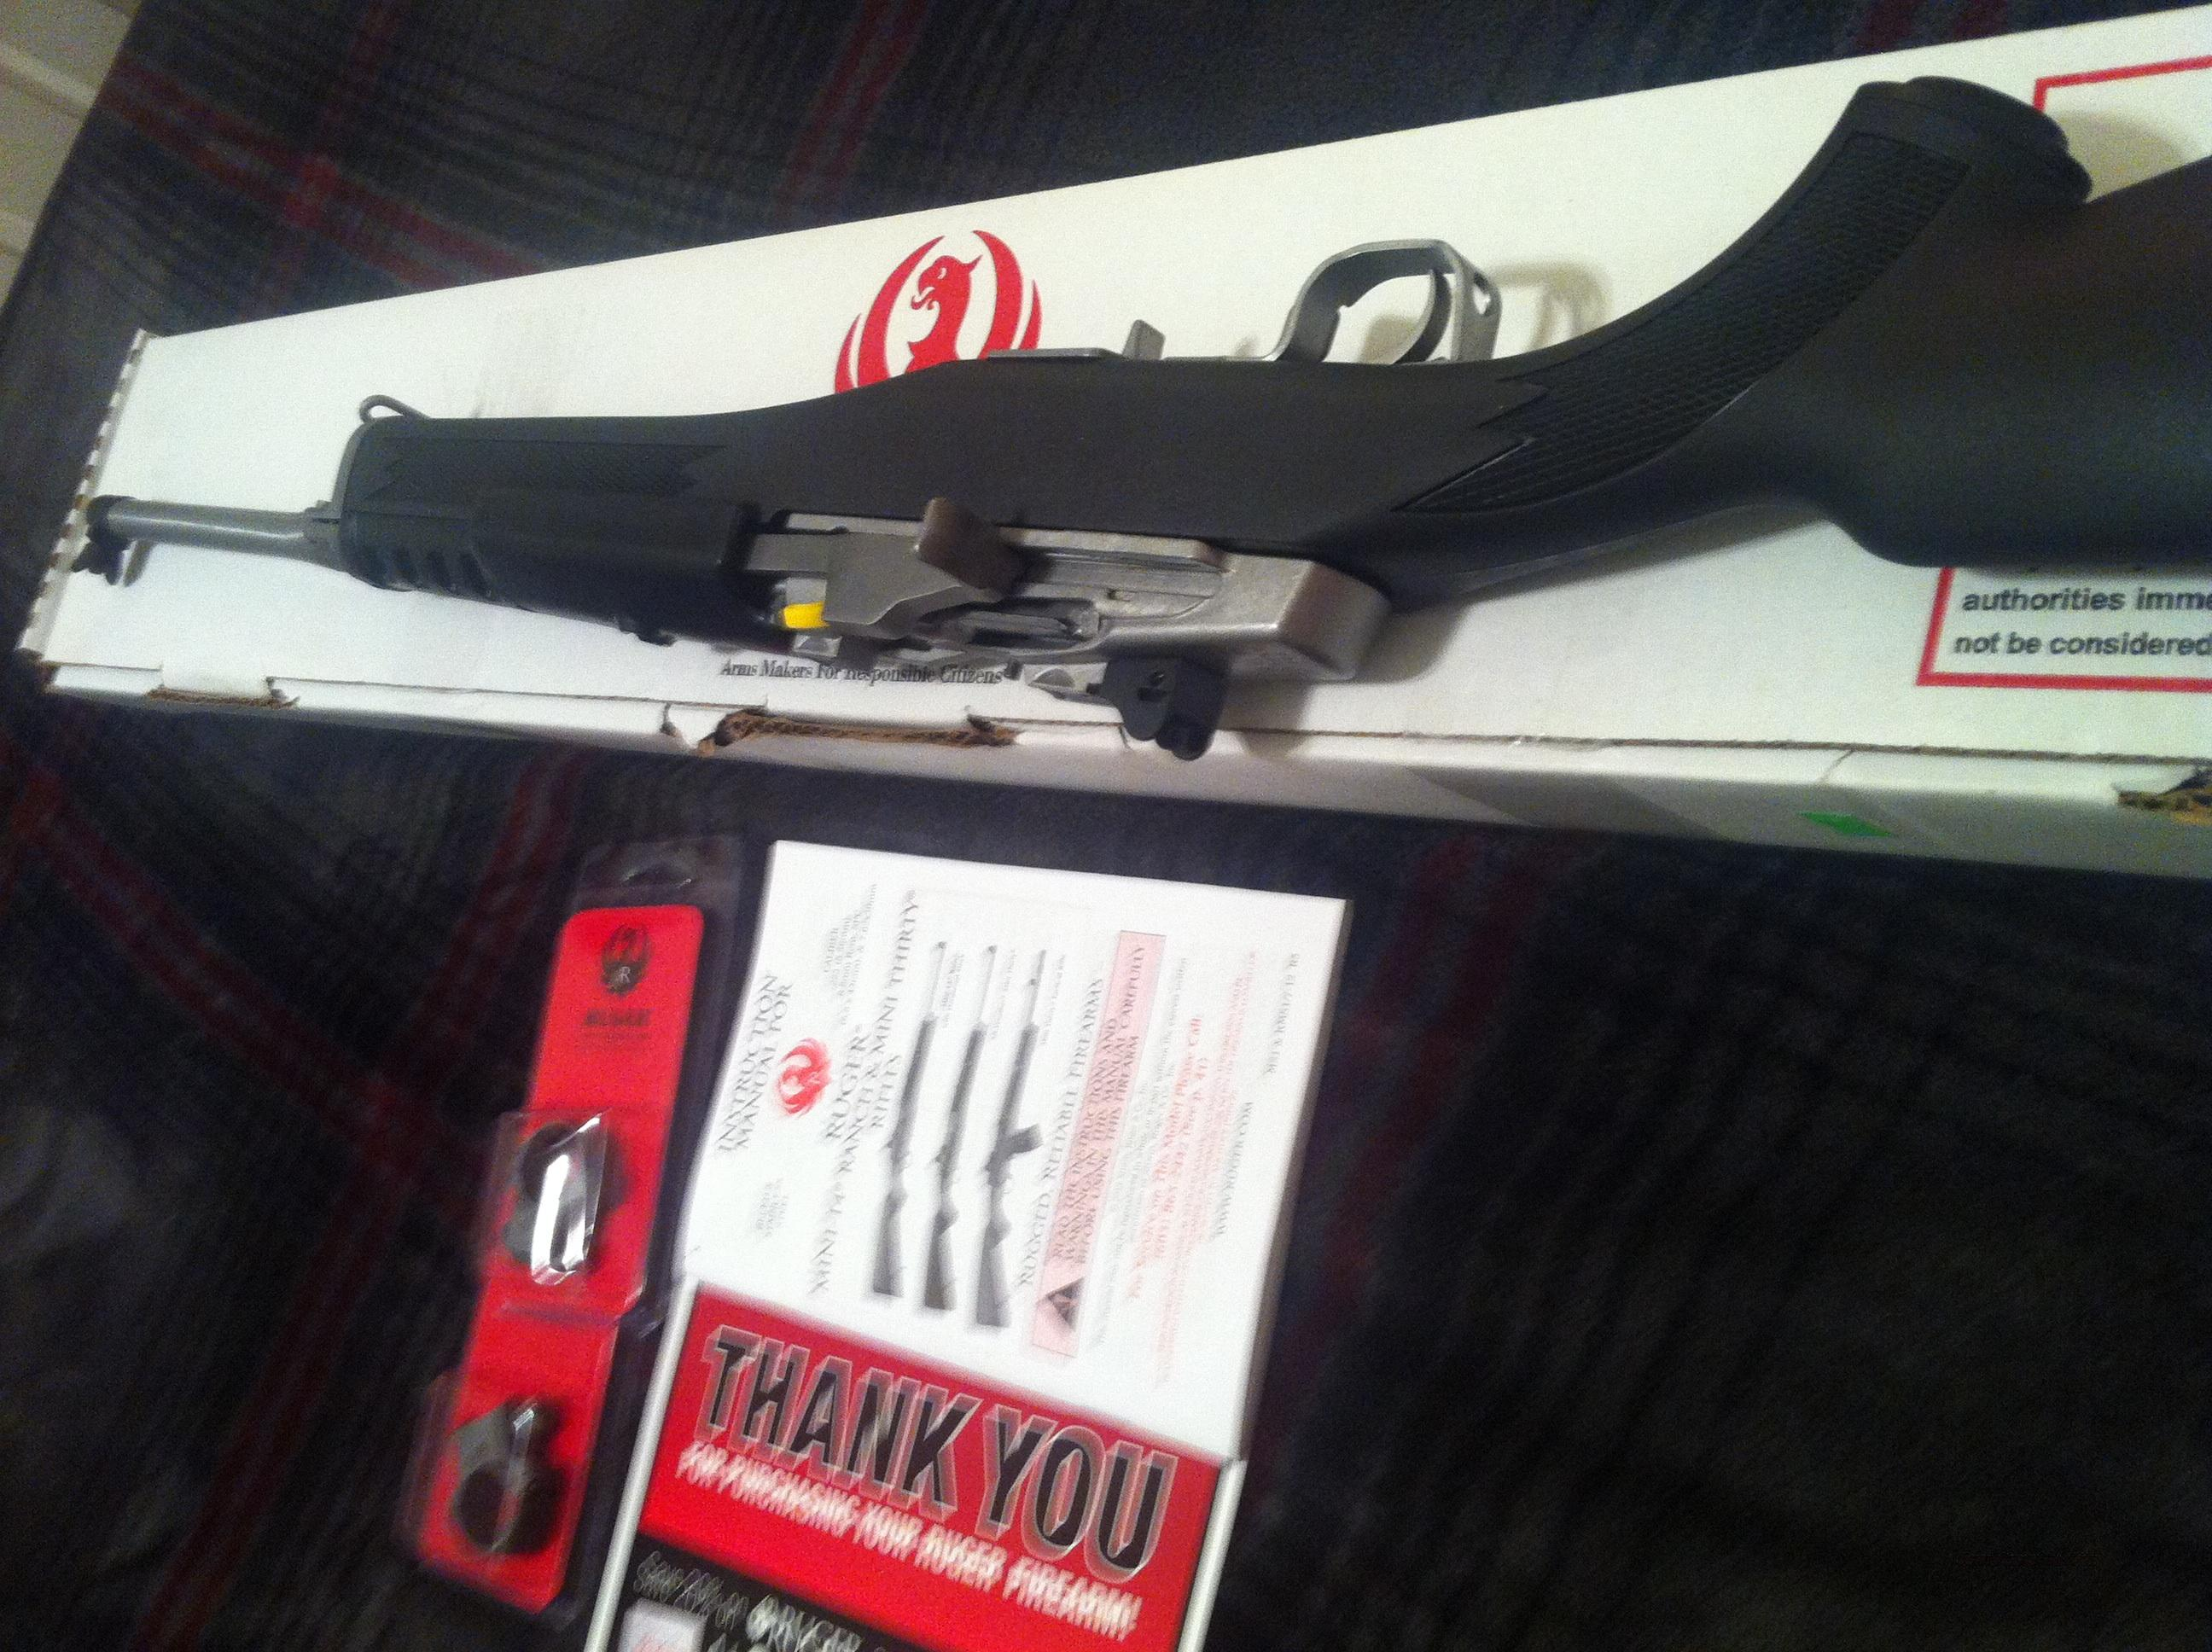 Ruger Mini 14 Ranch Rifle 223 5.56 Model # 5805 Stainless Steel with Synthetic Stock   Guns > Rifles > Ruger Rifles > Mini-14 Type